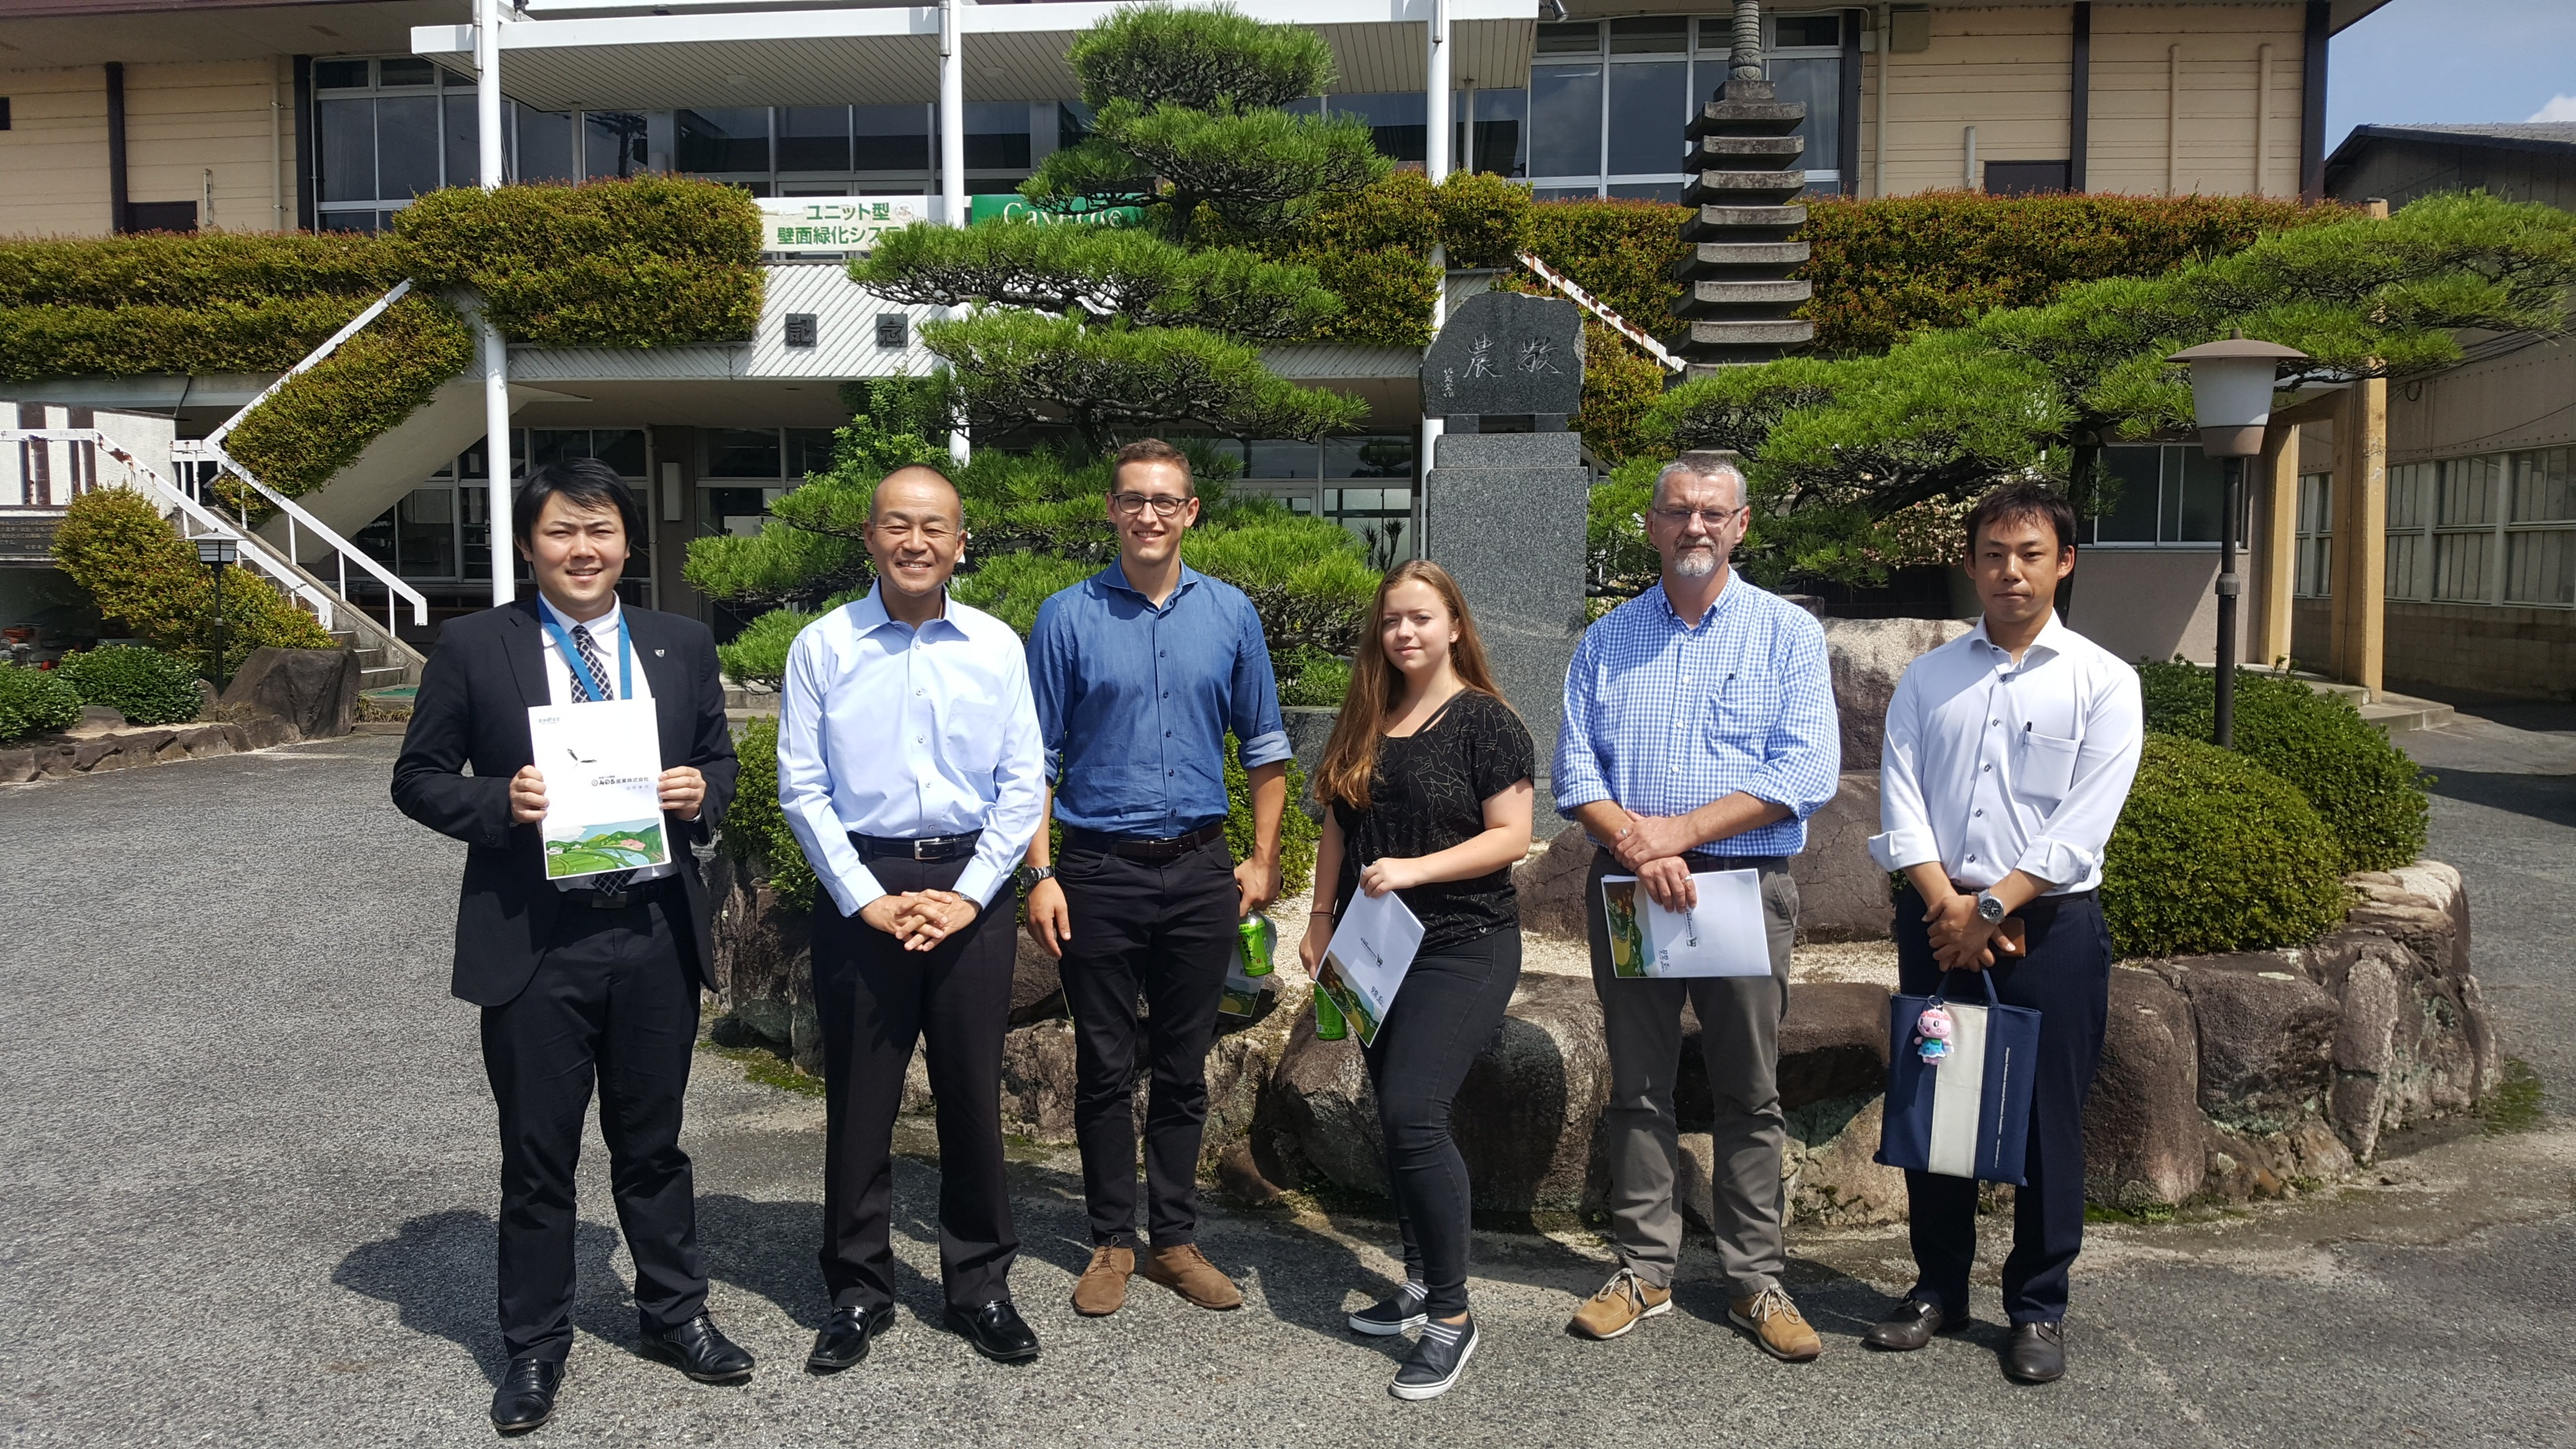 JapaneseJourney, a visit byPrague College School of Business:Part II